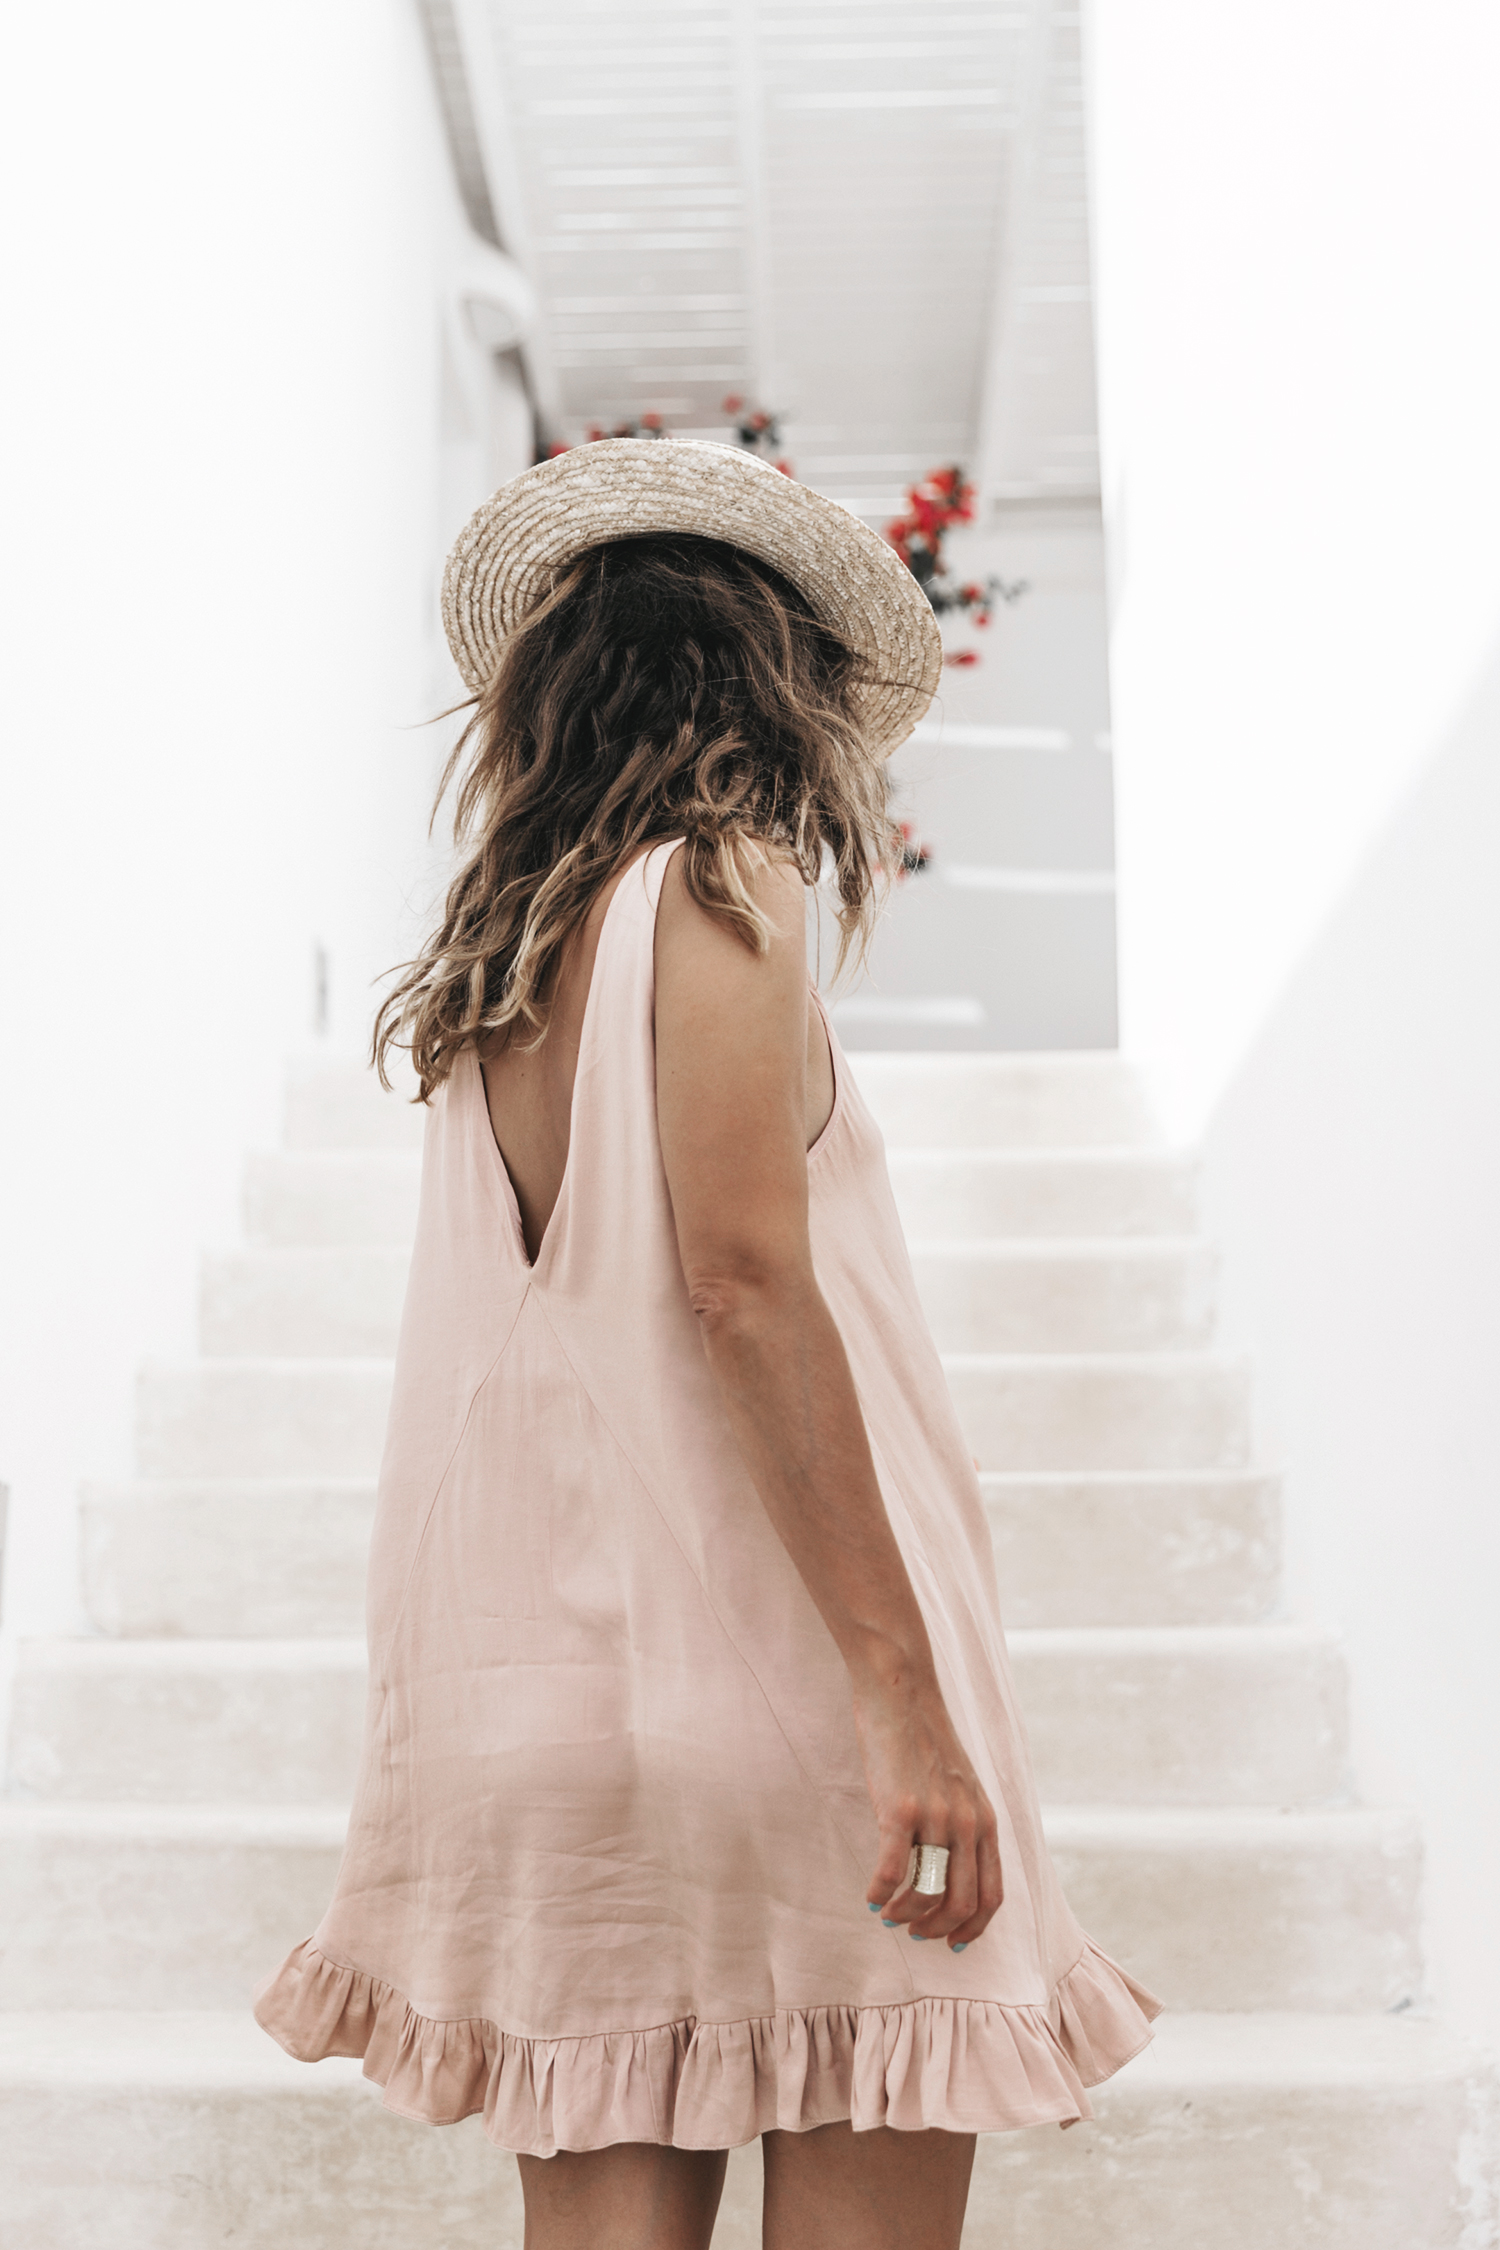 Soludos-Soludos_Escapes-Light_Pink_Dress-Knotted_Sandals-Mykonos-Greece-Collage_Vintage-Summer_Outfit-Street_Style-36